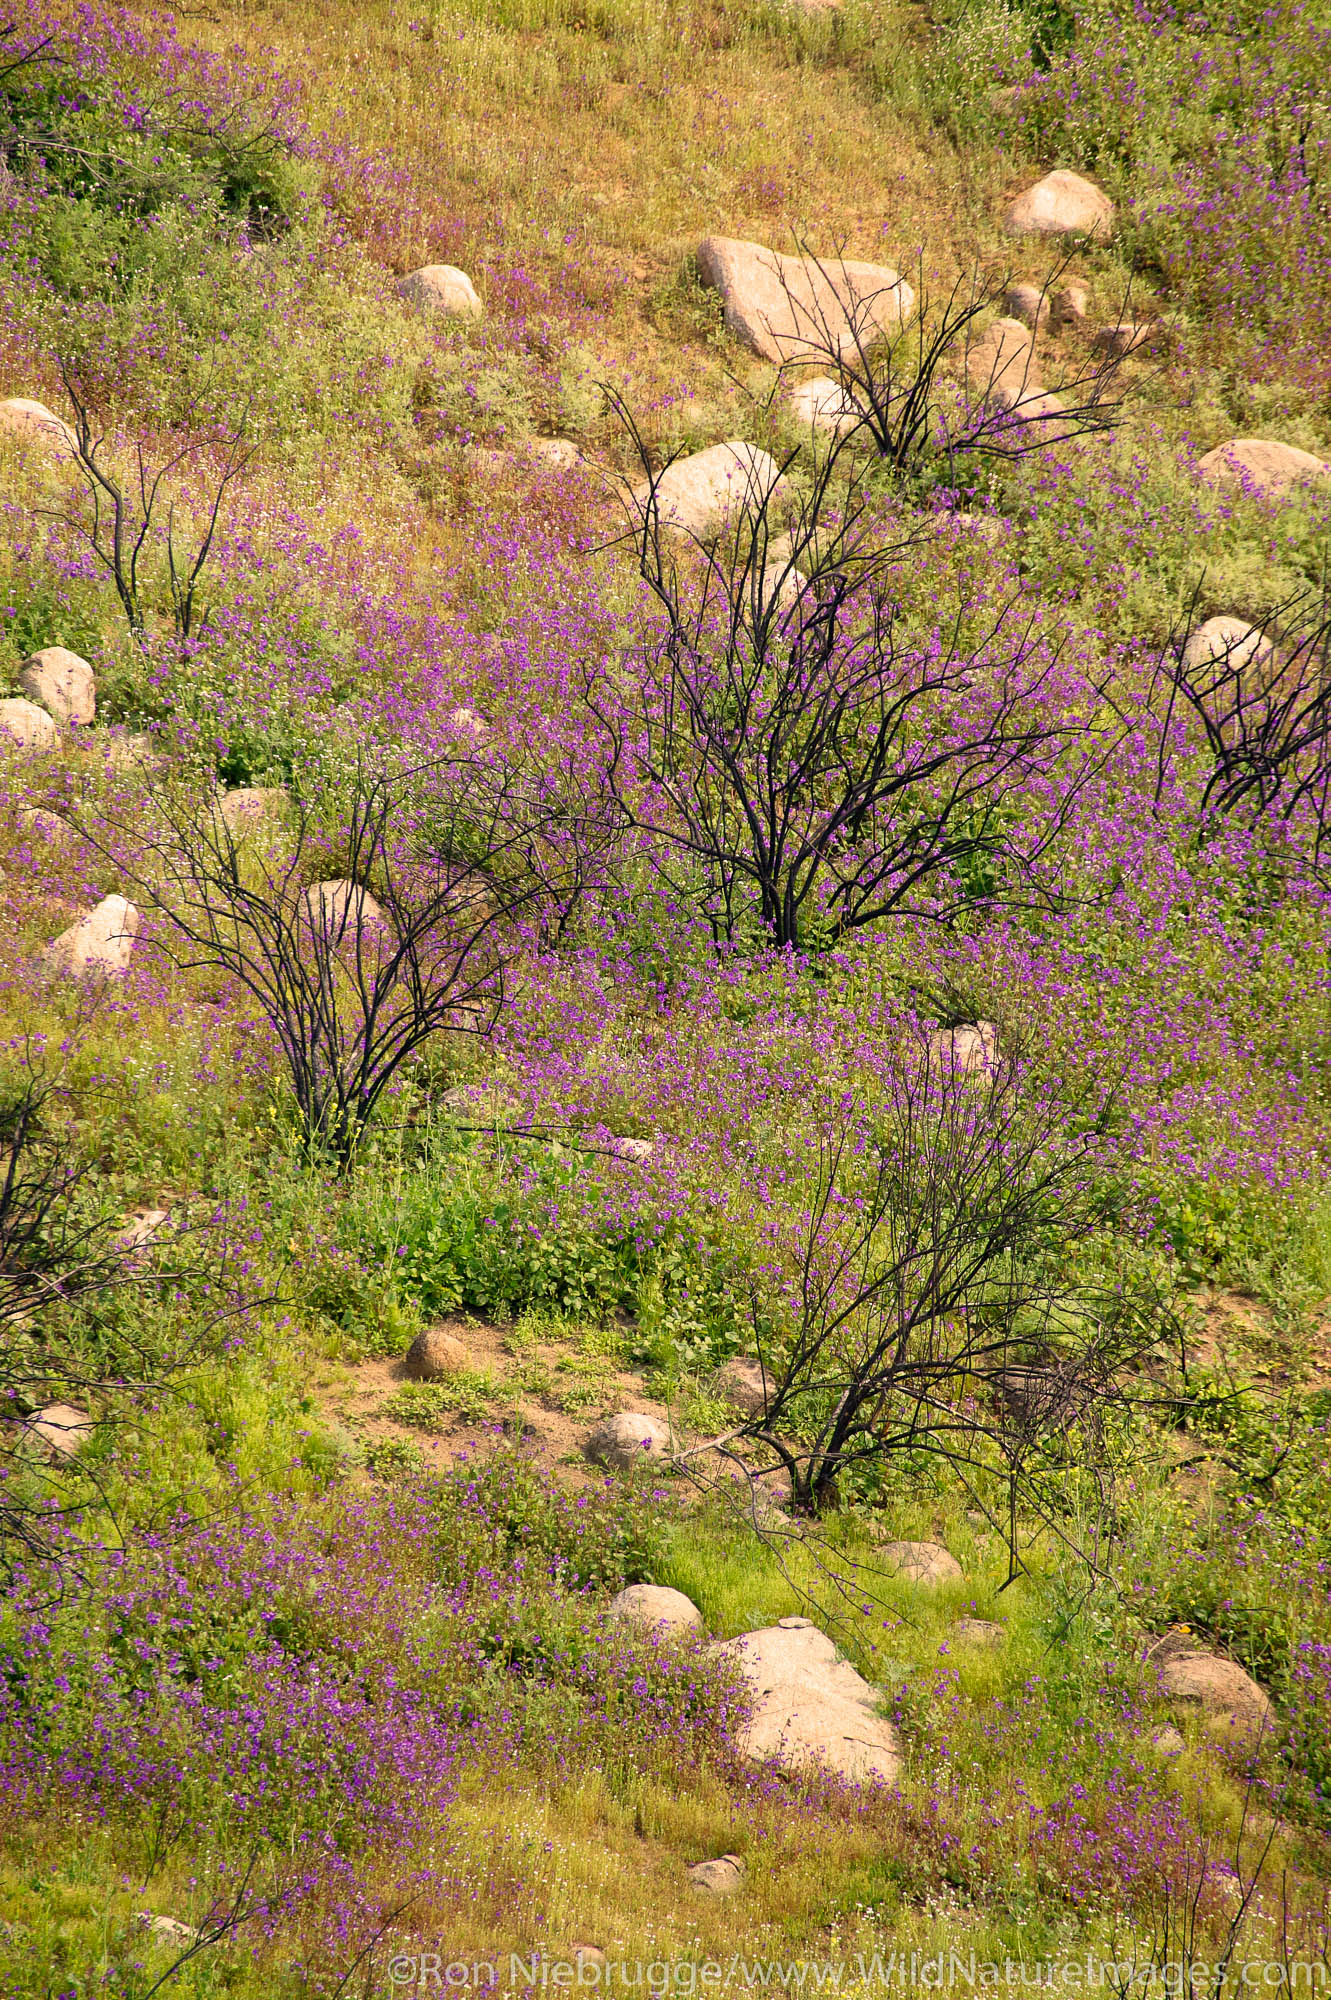 Spring wildflowers among dead branches from a recent wild fire near Lake Elsinore, California.